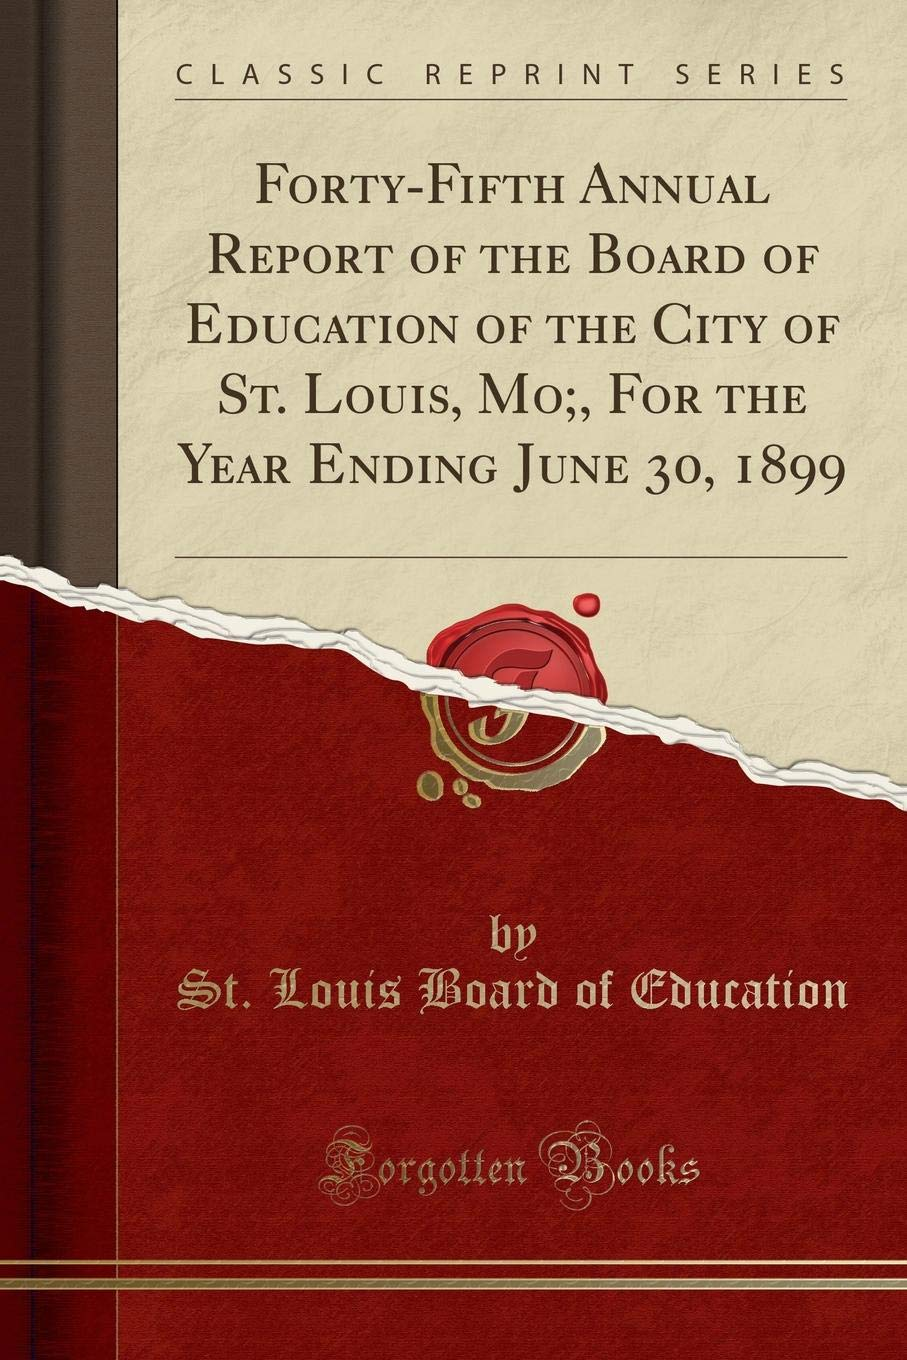 Forty-Fifth Annual Report of the Board of Education of the City of St. Louis, Mo;, For the Year Ending June 30, 1899 (Classic Reprint) pdf